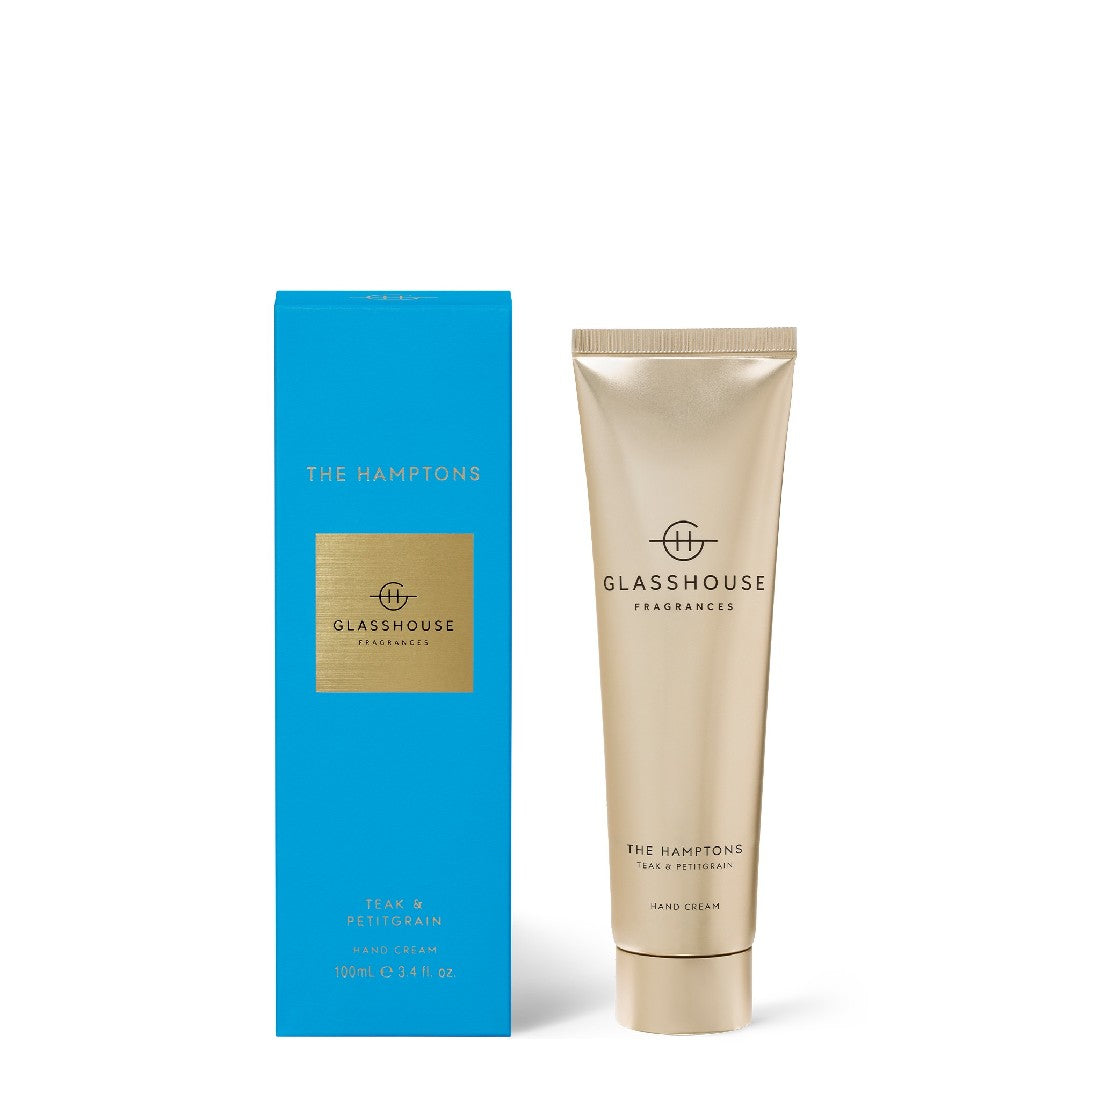 GLASSHOUSE TEAK & PETITGRAIN- THE HAMPTONS 100ml HAND CREAM